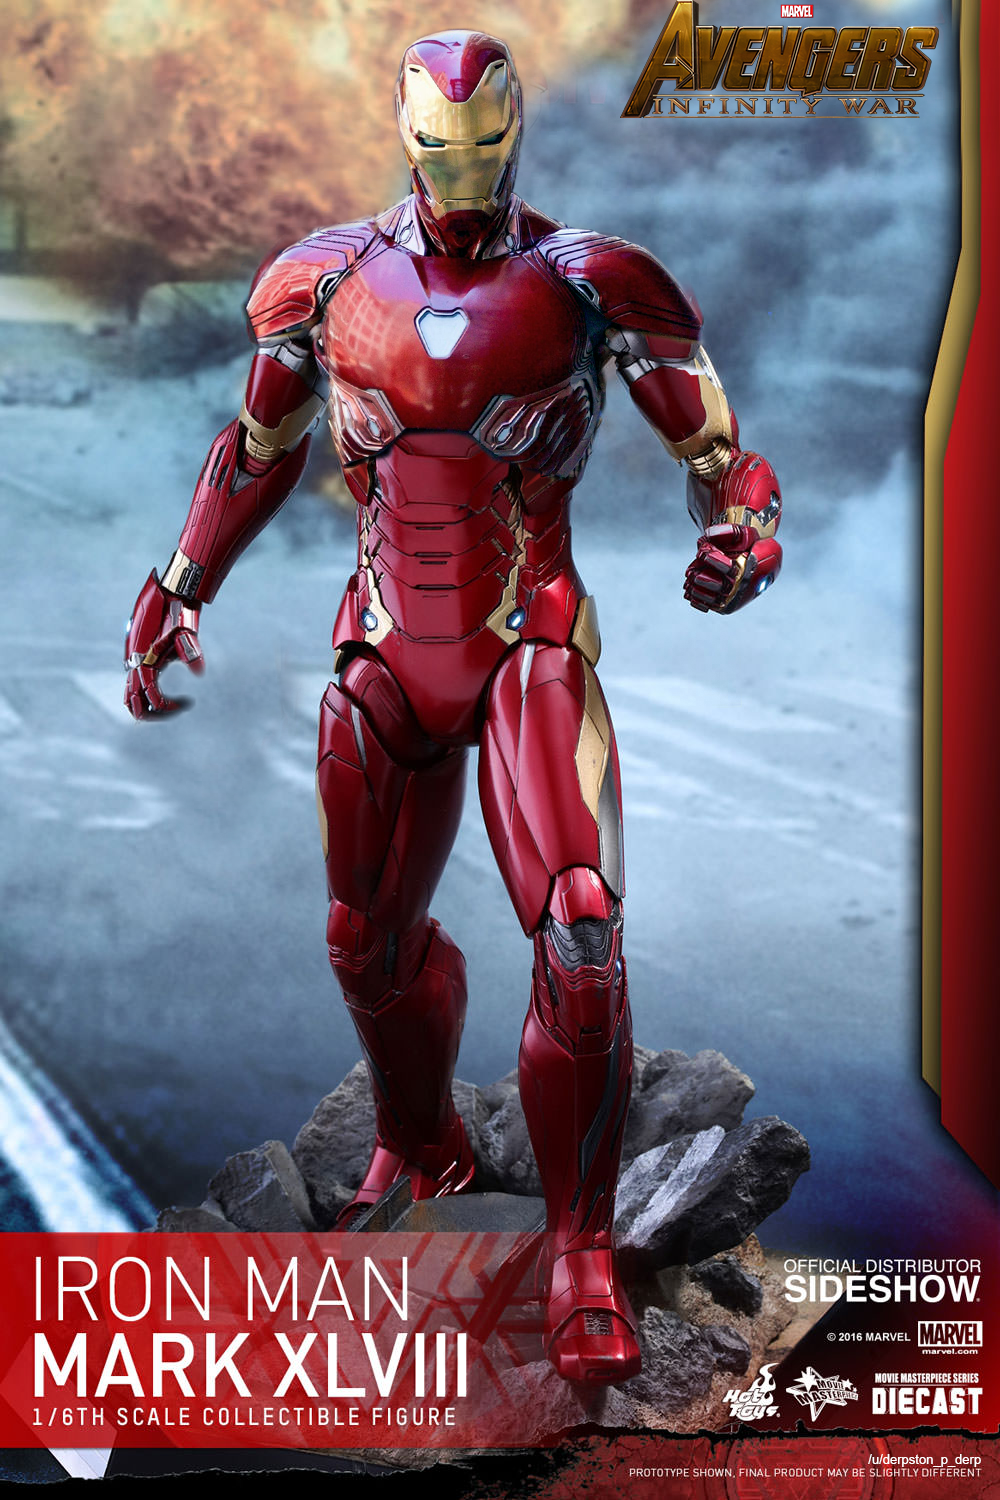 infinity war iron man armor awesome photoshop job gives